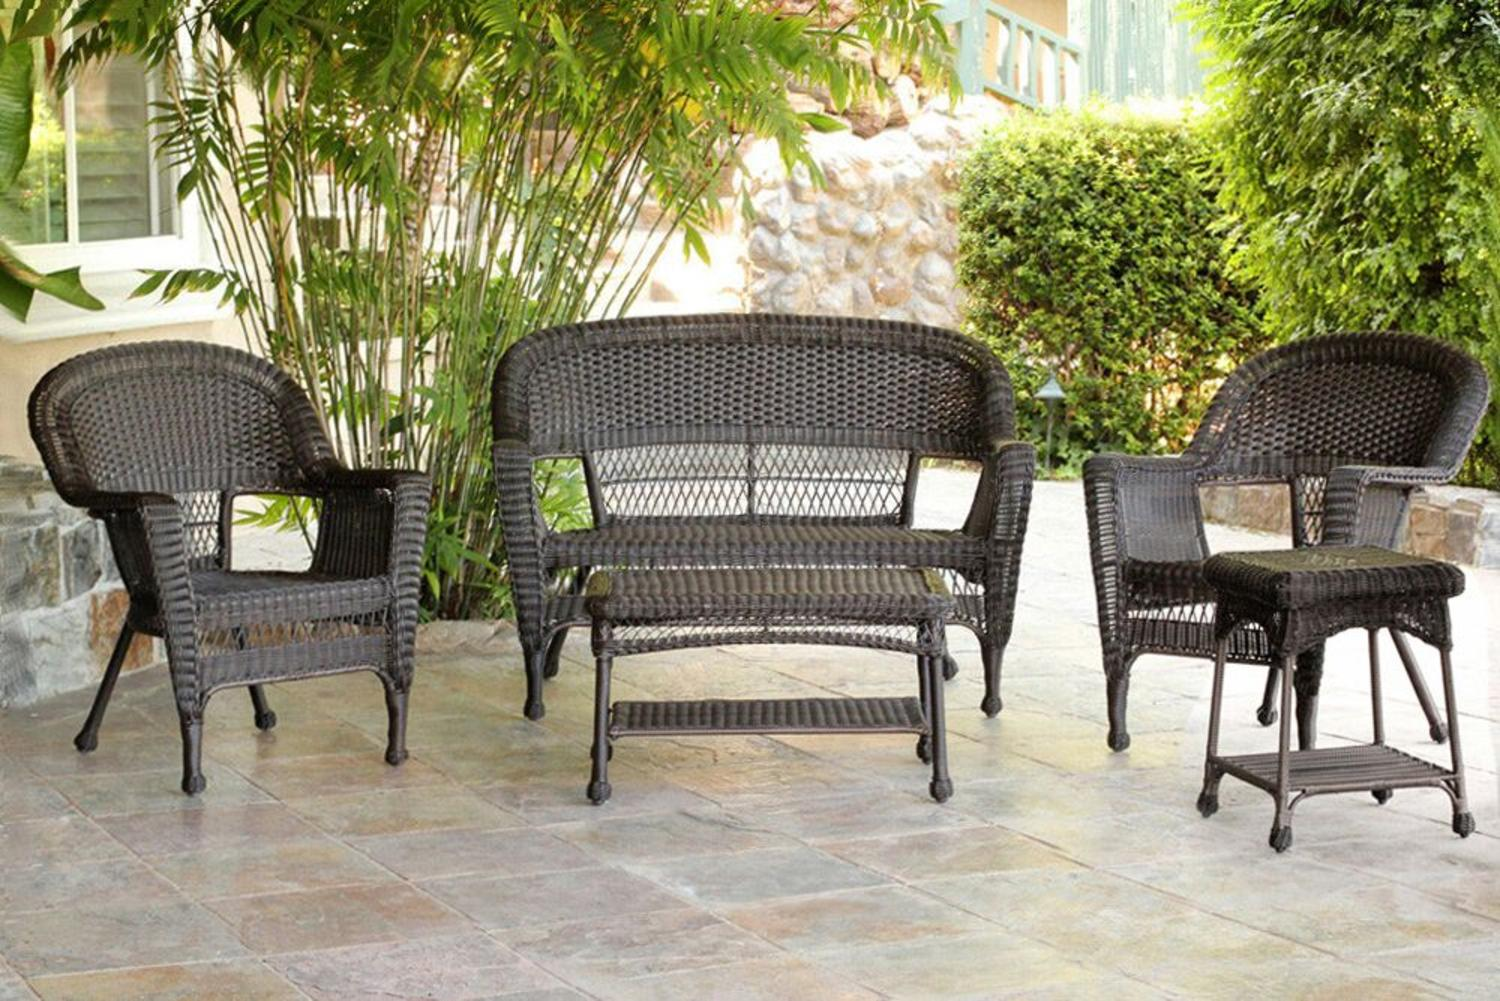 5-Piece Espresso Resin Wicker Patio Chairs, Loveseat and End Table Furniture Set by Resin Furniture